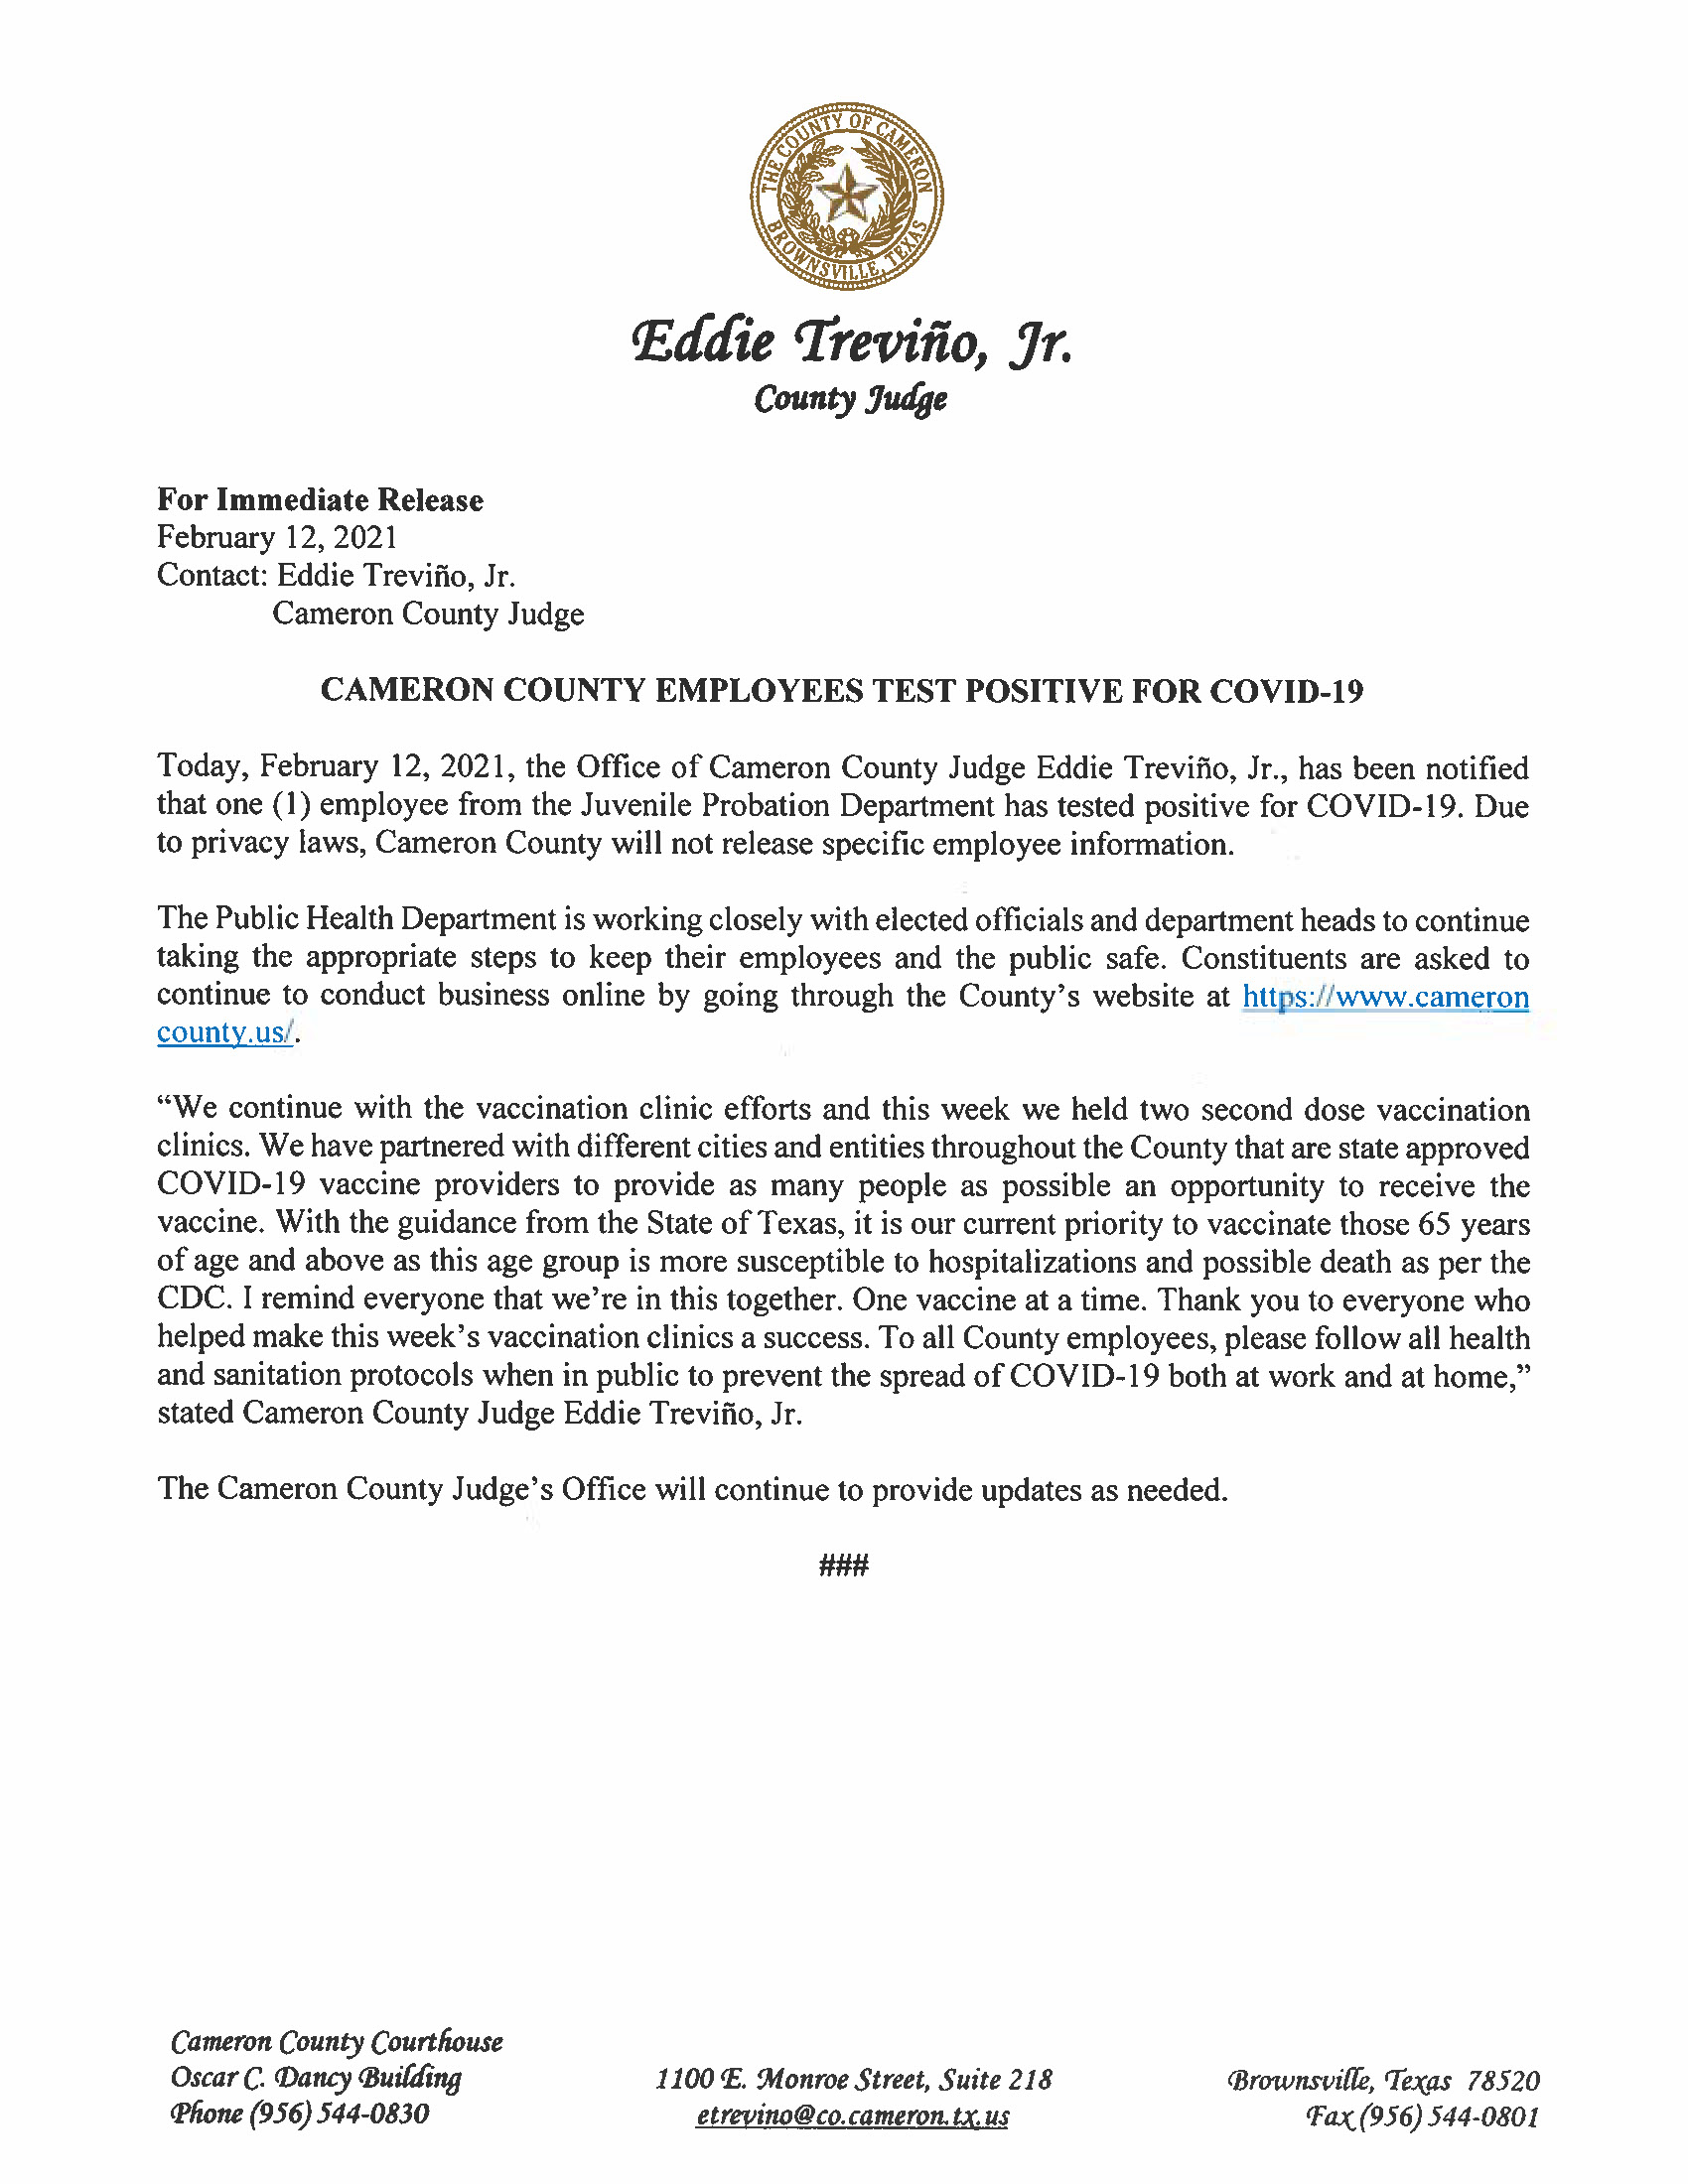 Cameron County Employees Test Positive for Covid-19